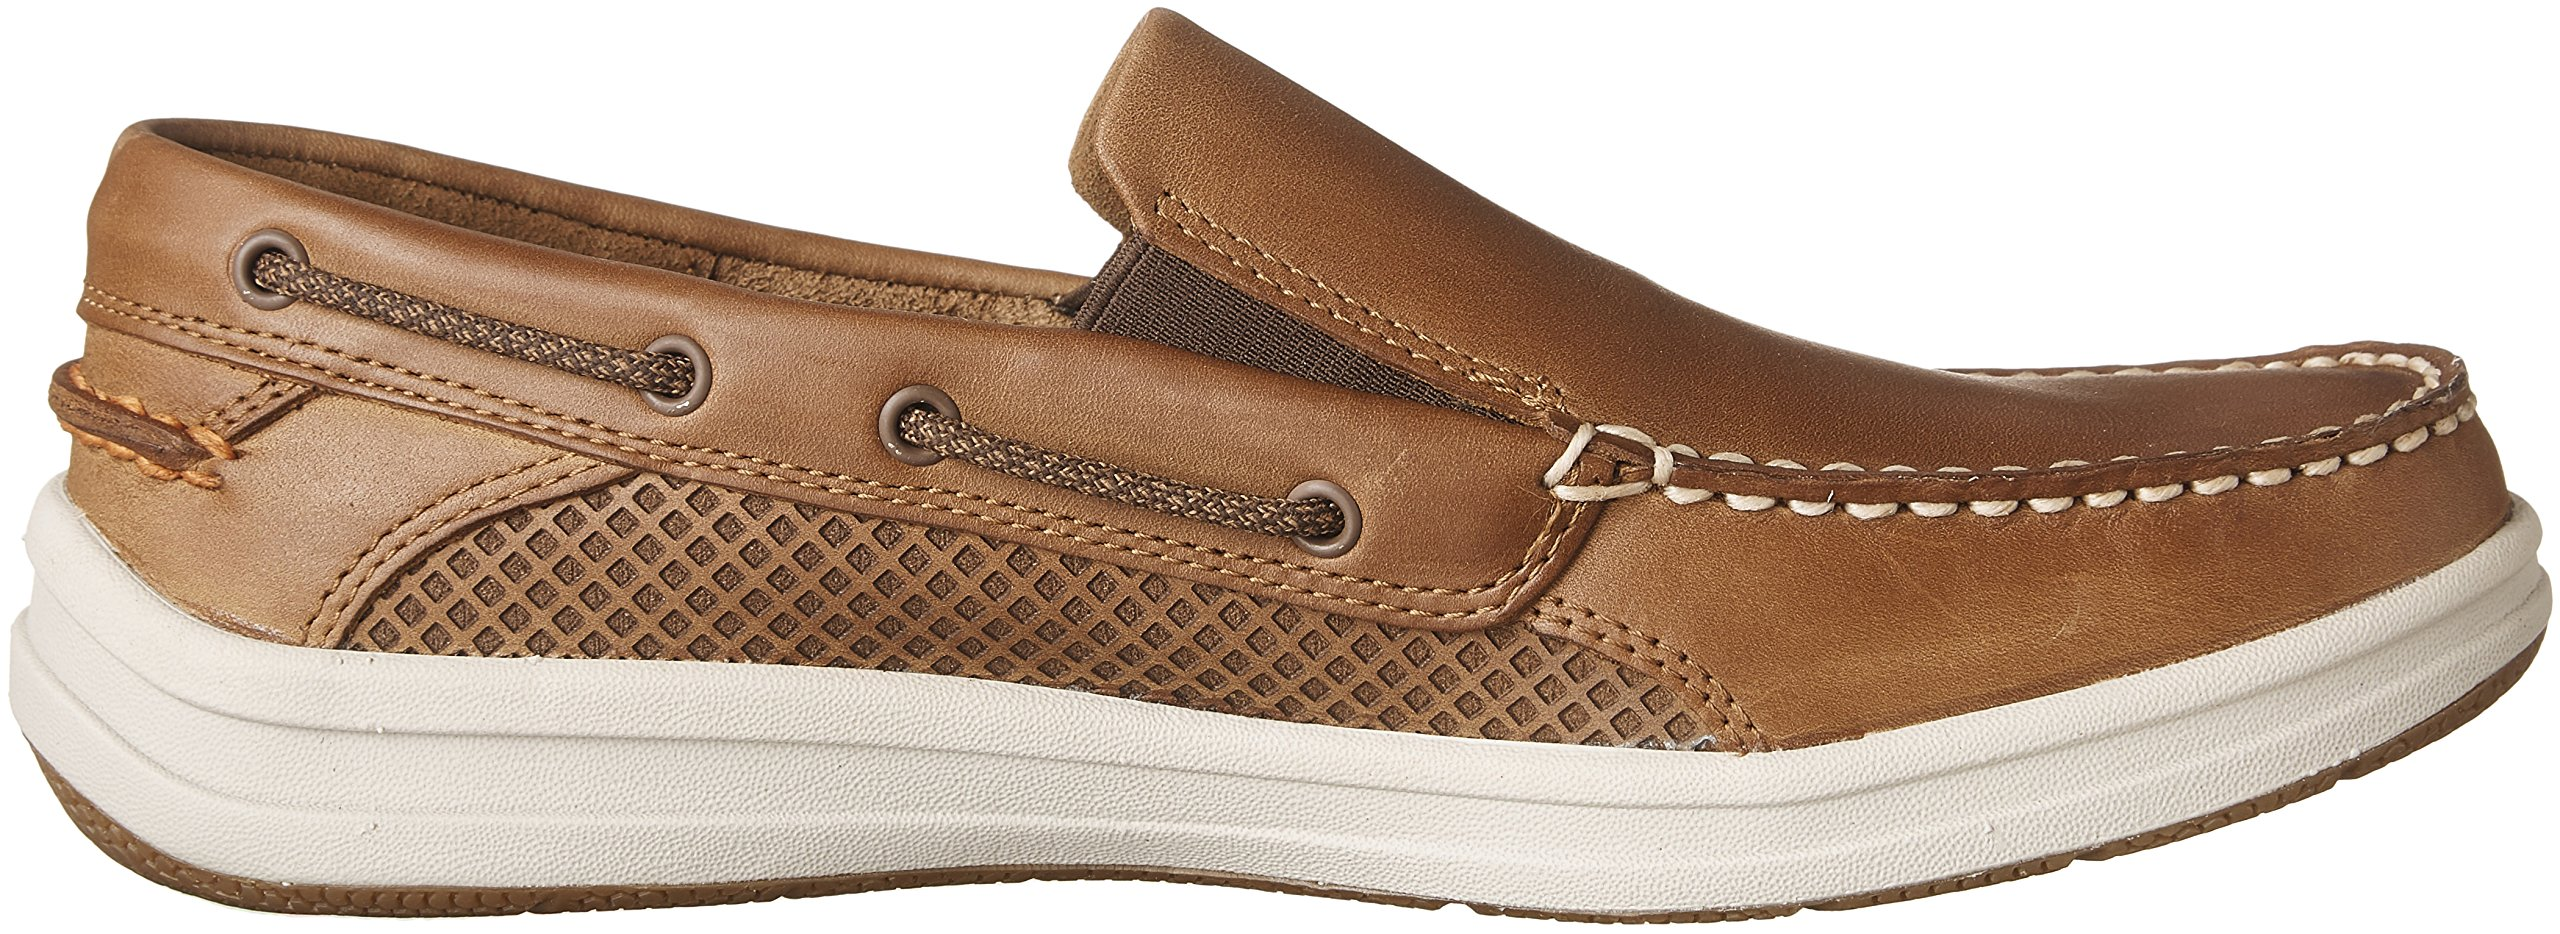 Sperry Top-Sider Men's Gamefish Slip On Boat Shoe, Dark Tan, 10.5 M US by Sperry Top-Sider (Image #7)